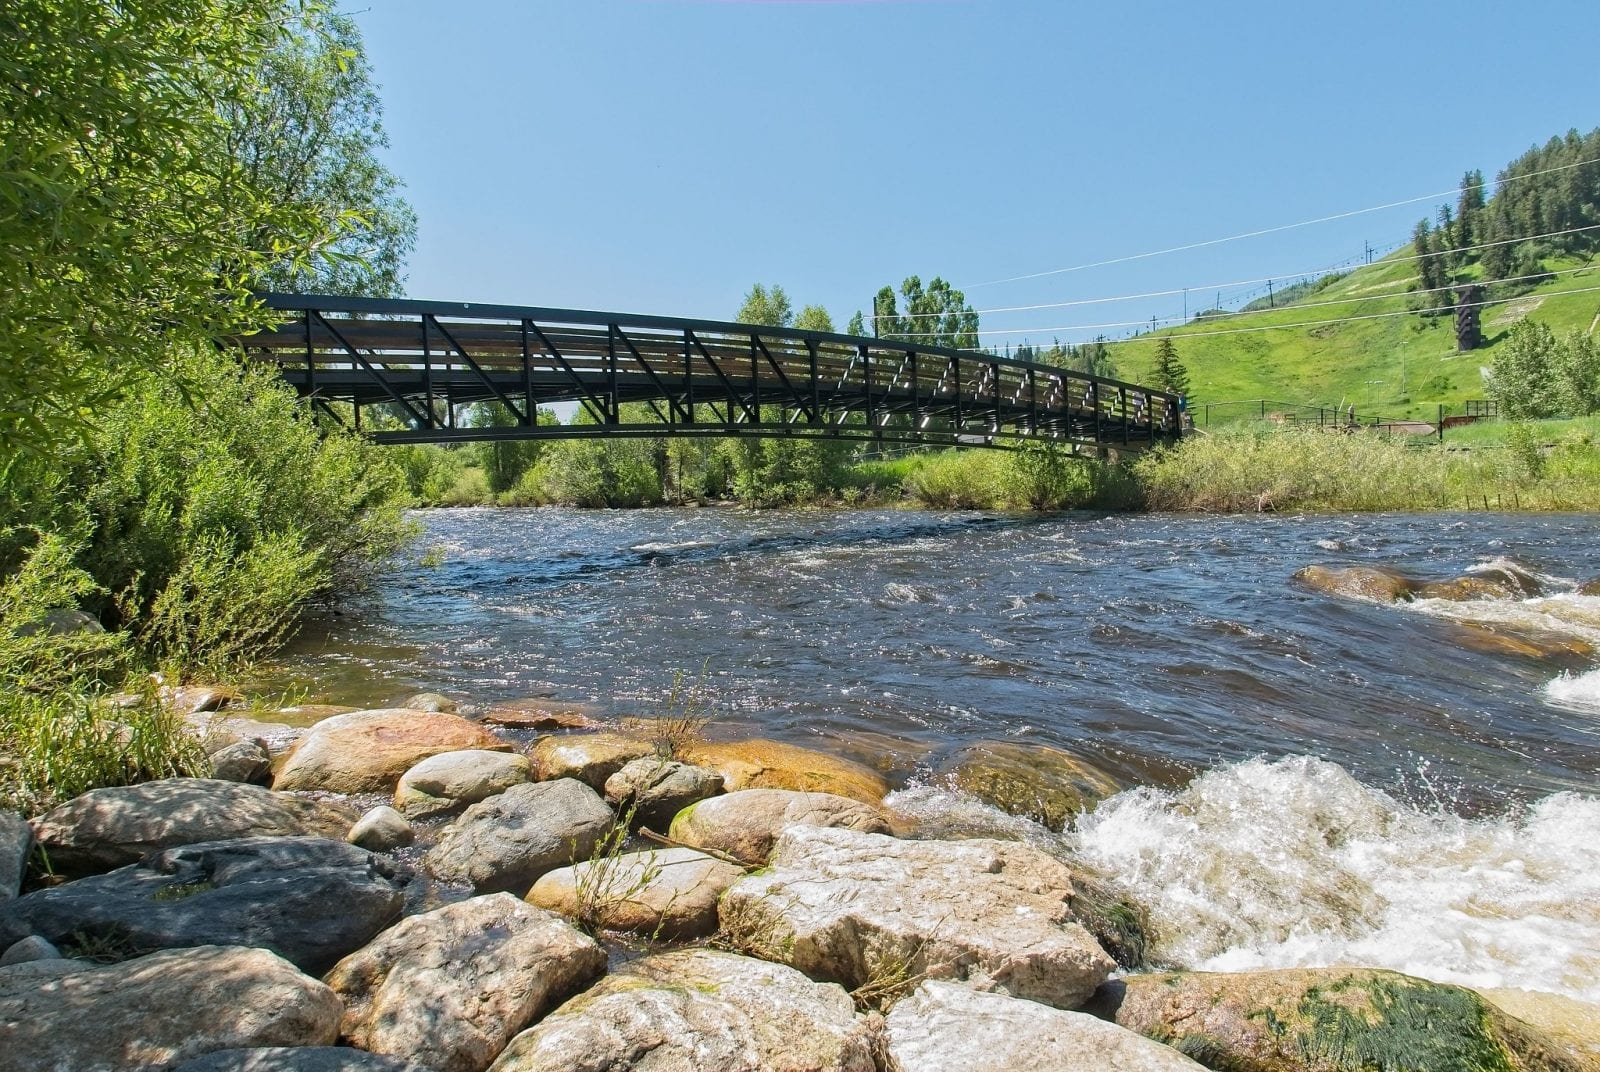 Image of a bridge going across the Yampa River near Steamboat Springs